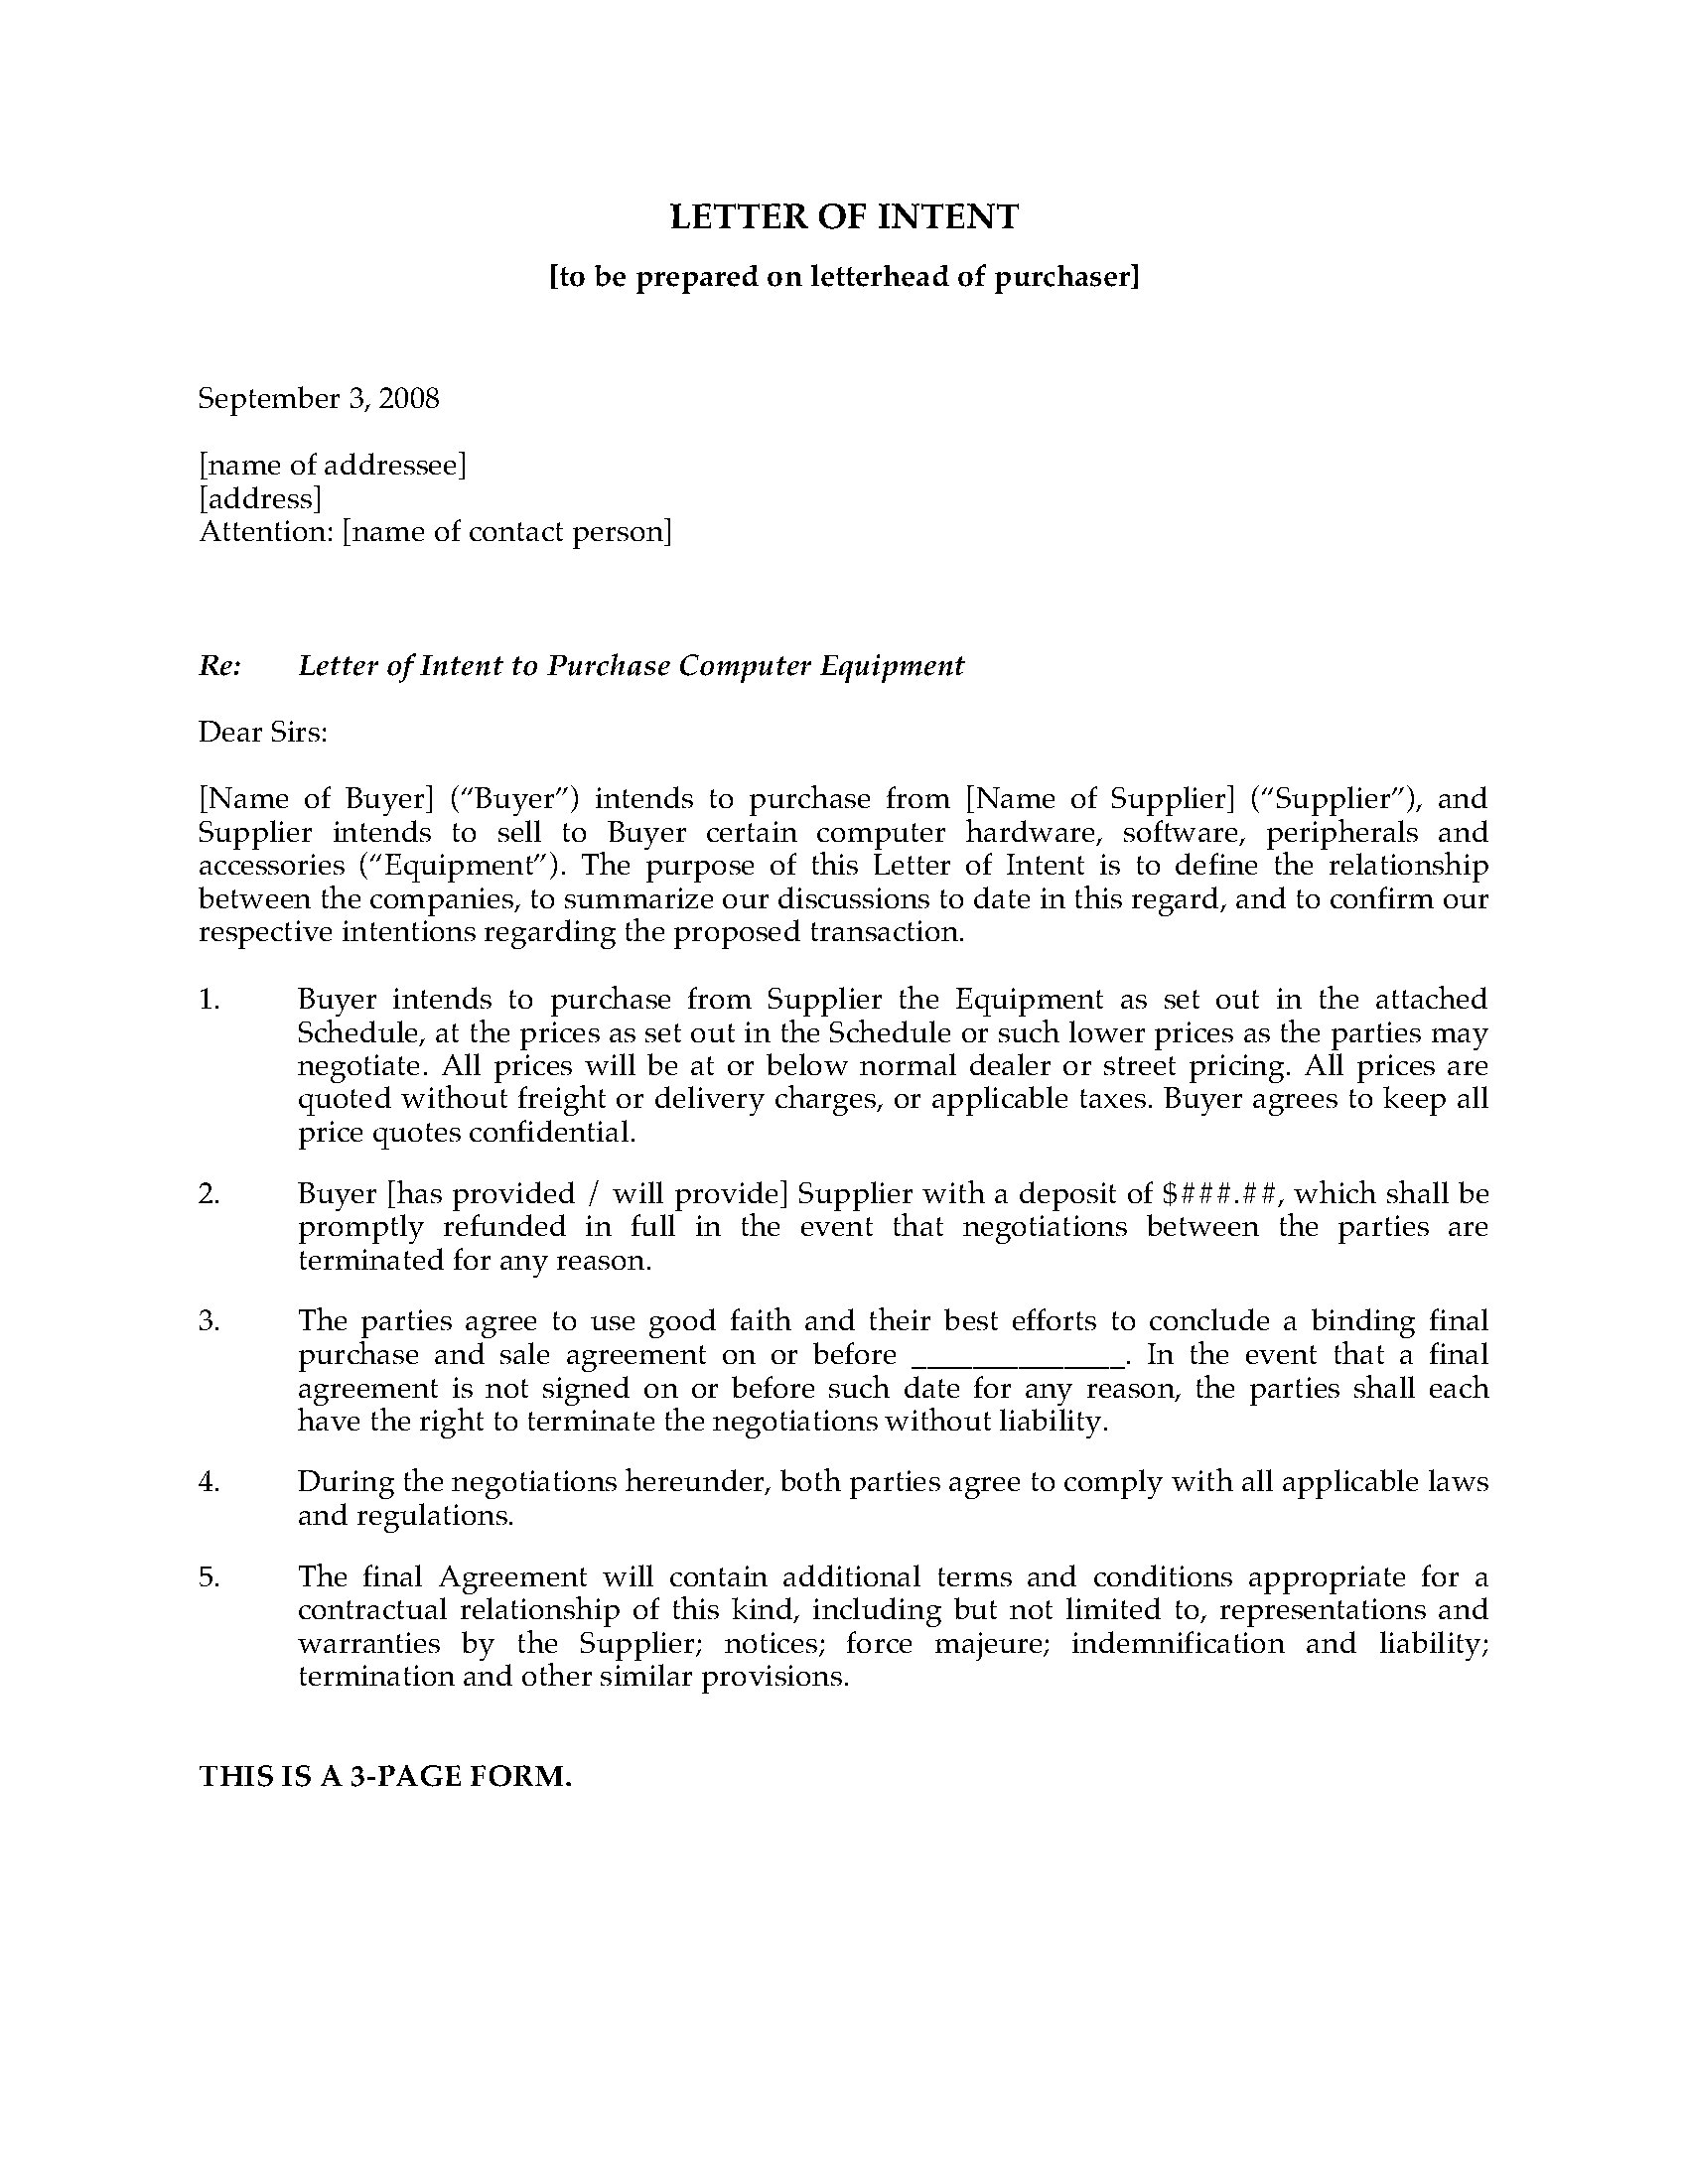 Letter Of Intent to Purchase Equipment Template - Mockupr Intent to Purchase Equipment Property Template In